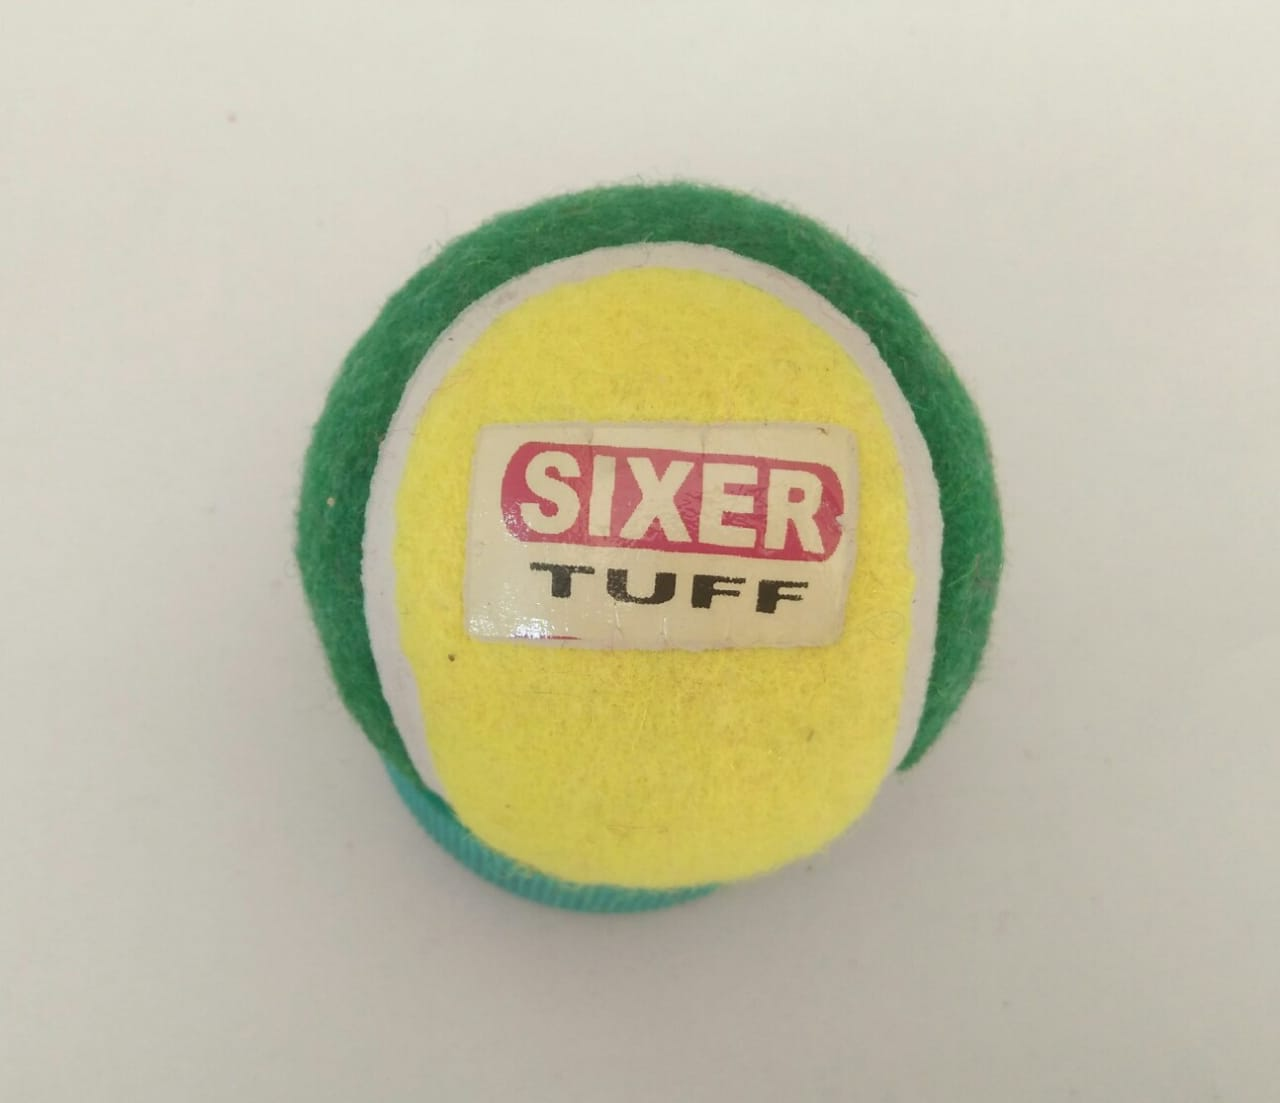 Product Name :-Sixer tuff Fun